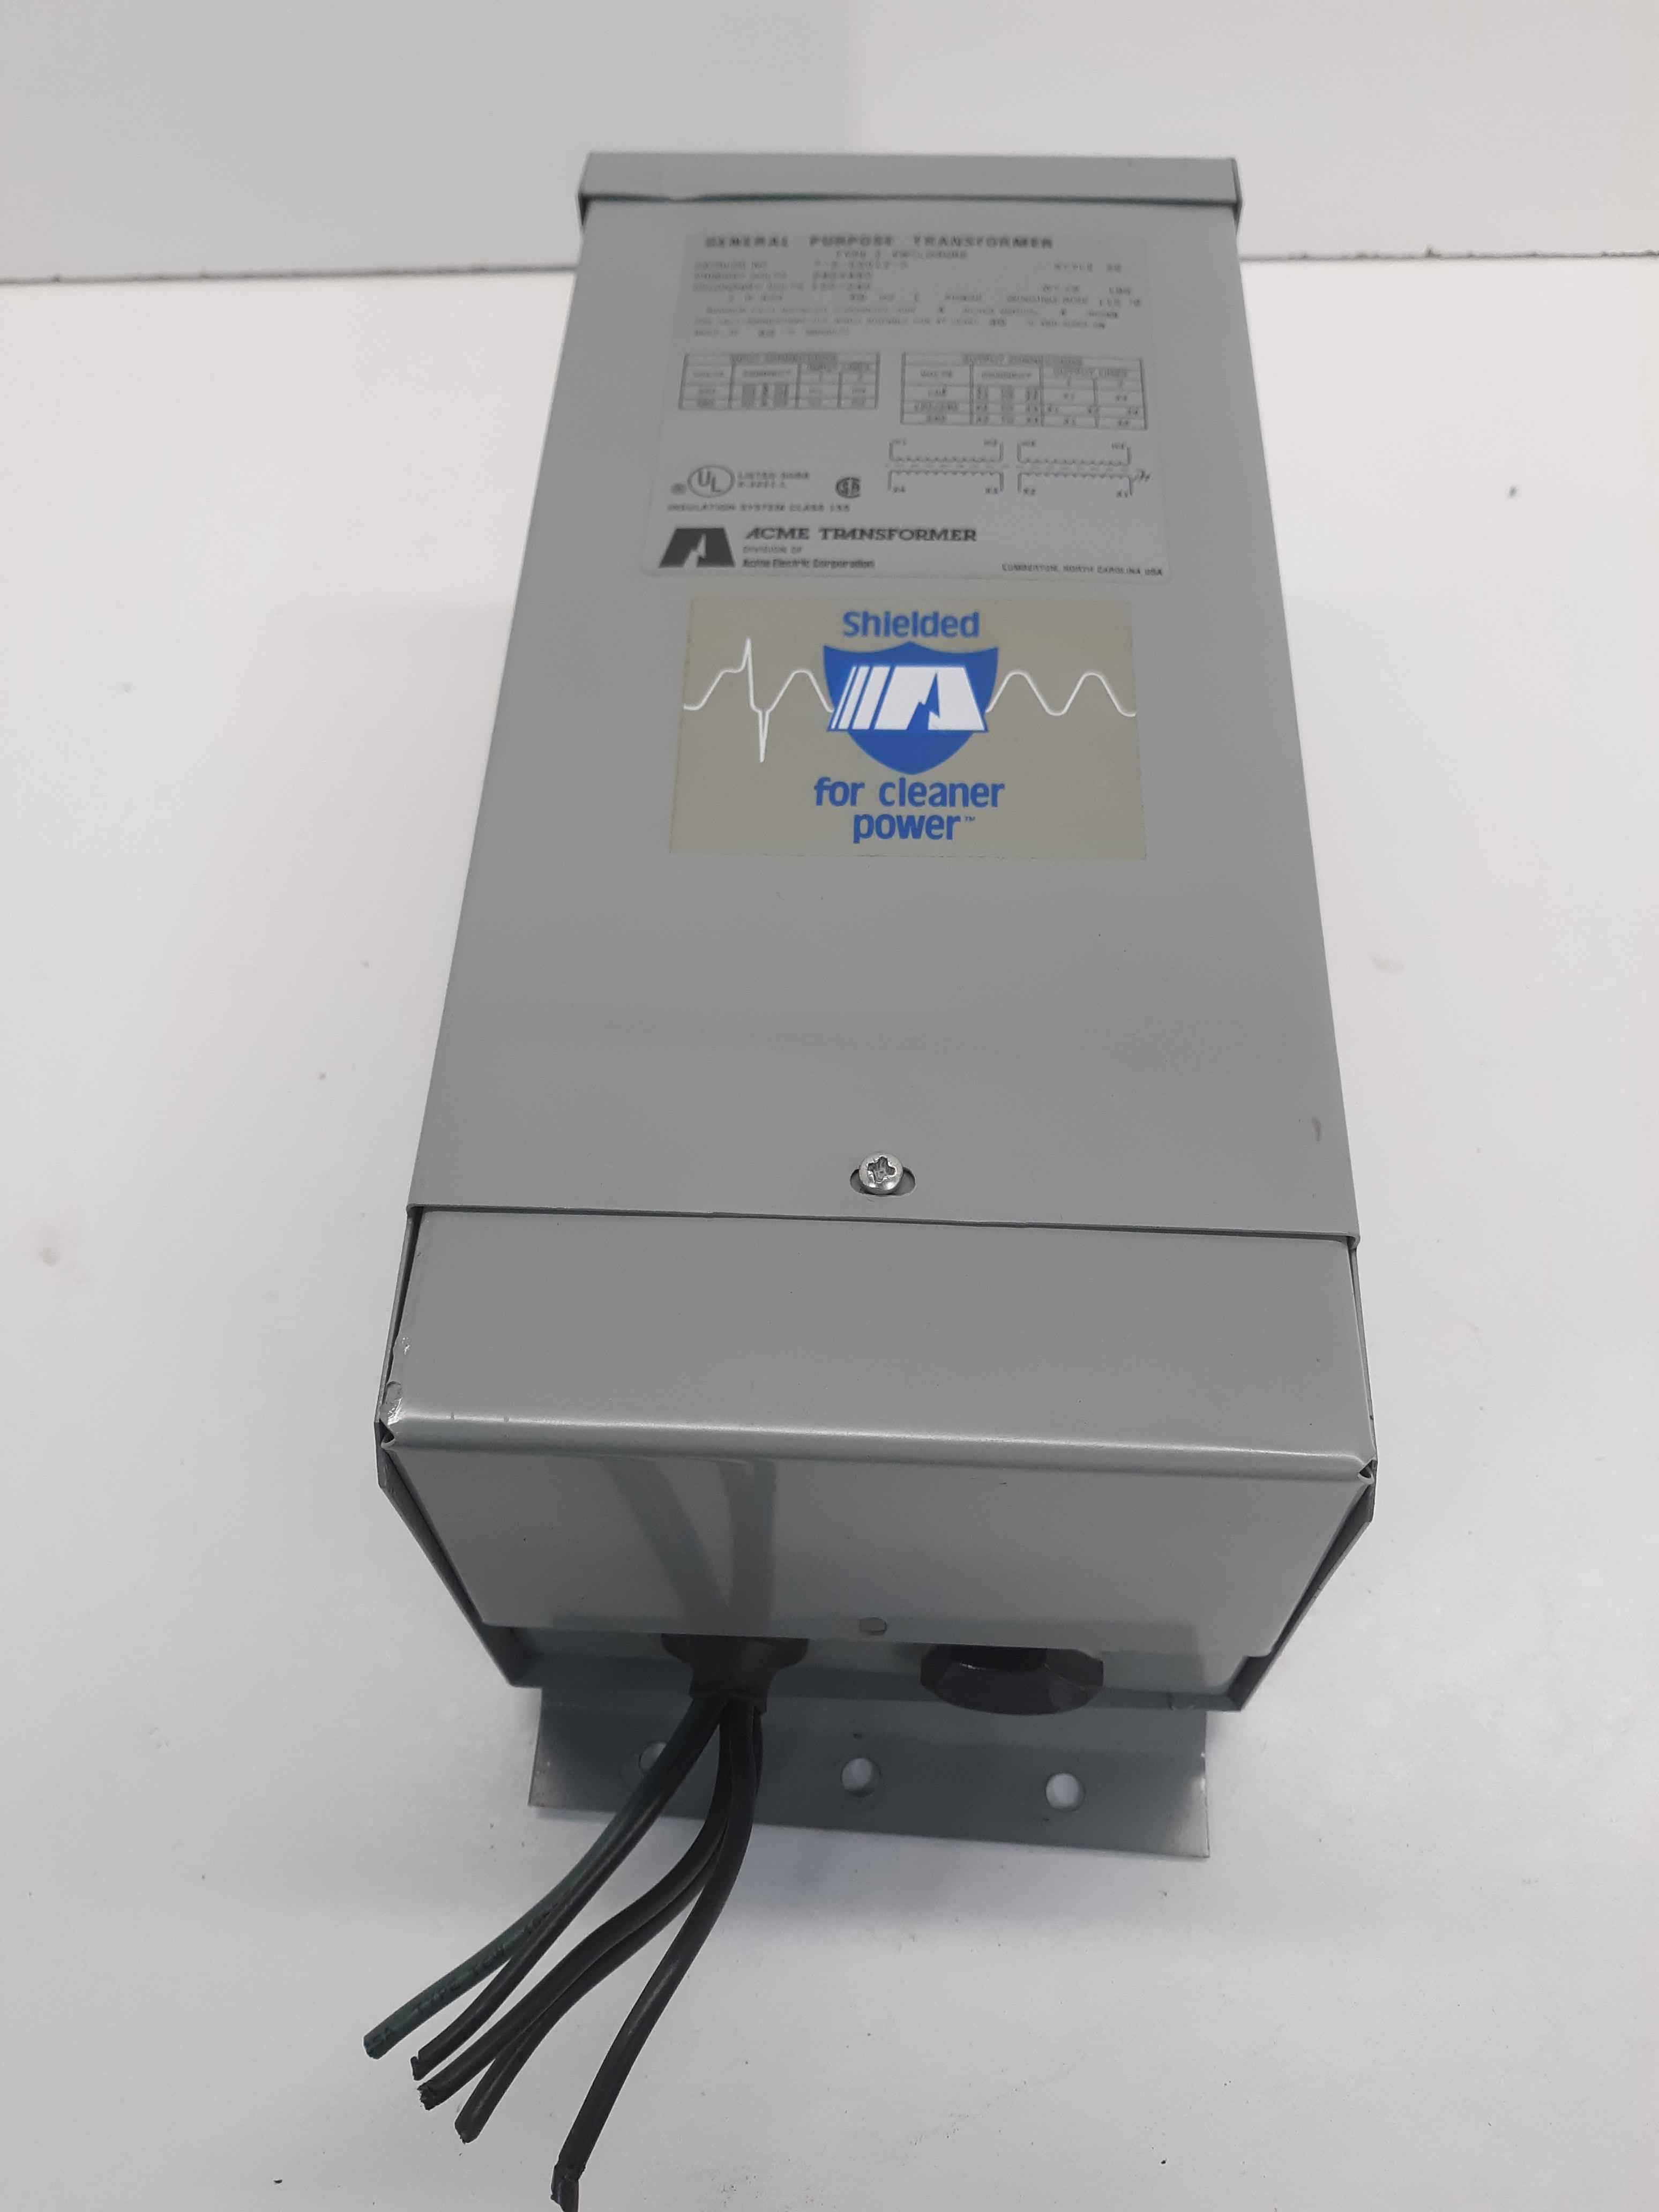 Acme General Purpose Transformer Type 2 Enclosure Style SE Cat. T-2-53012-S